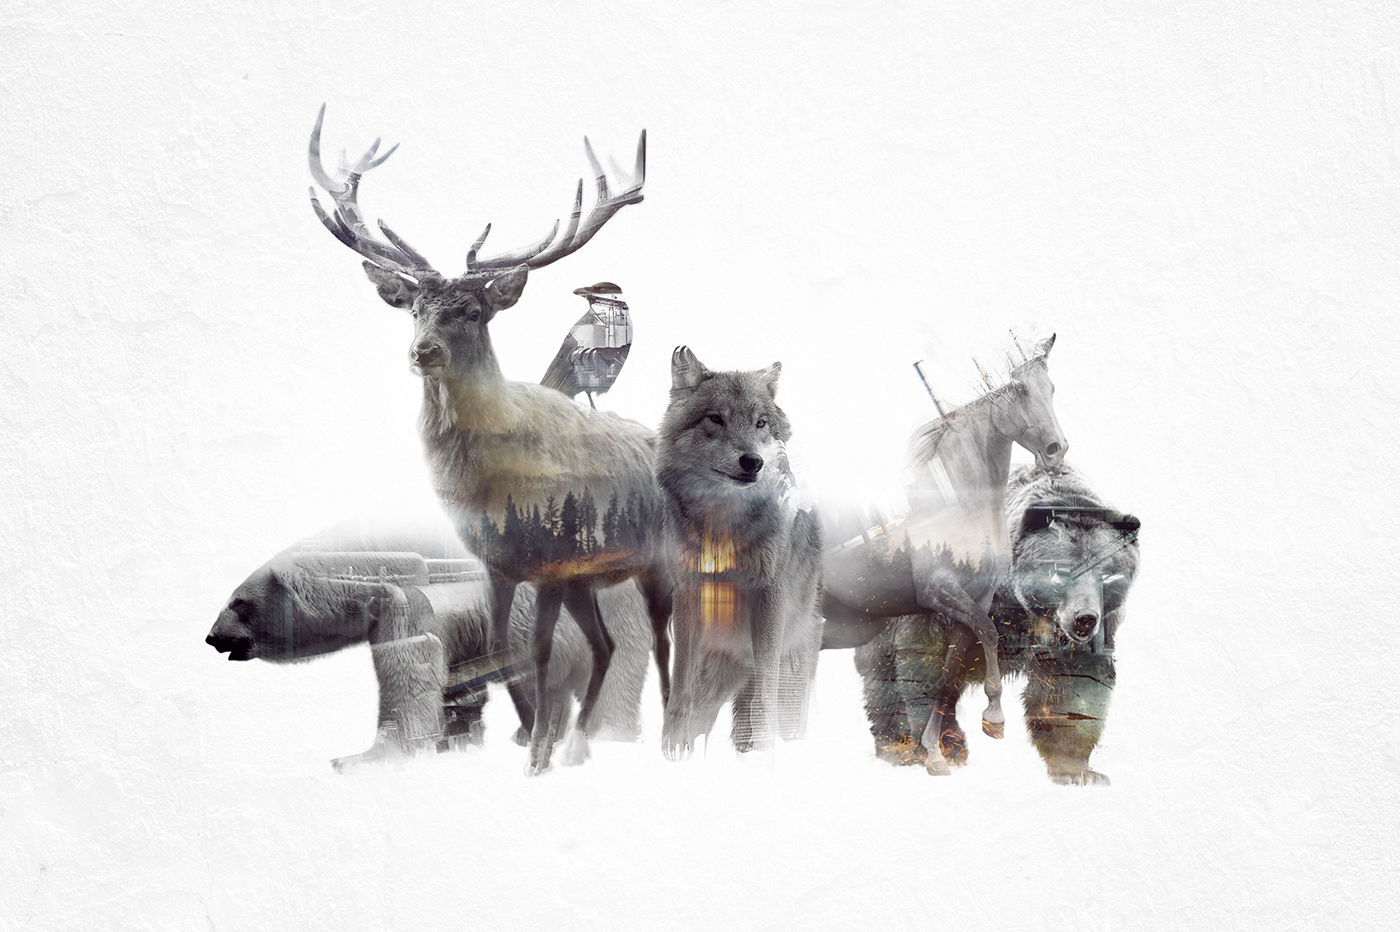 double exposure,İmages Animated with,cinemagraph,double,Exposure,gif,video,pozlama,turk,animals,wolf,horse,bear,whales,wild